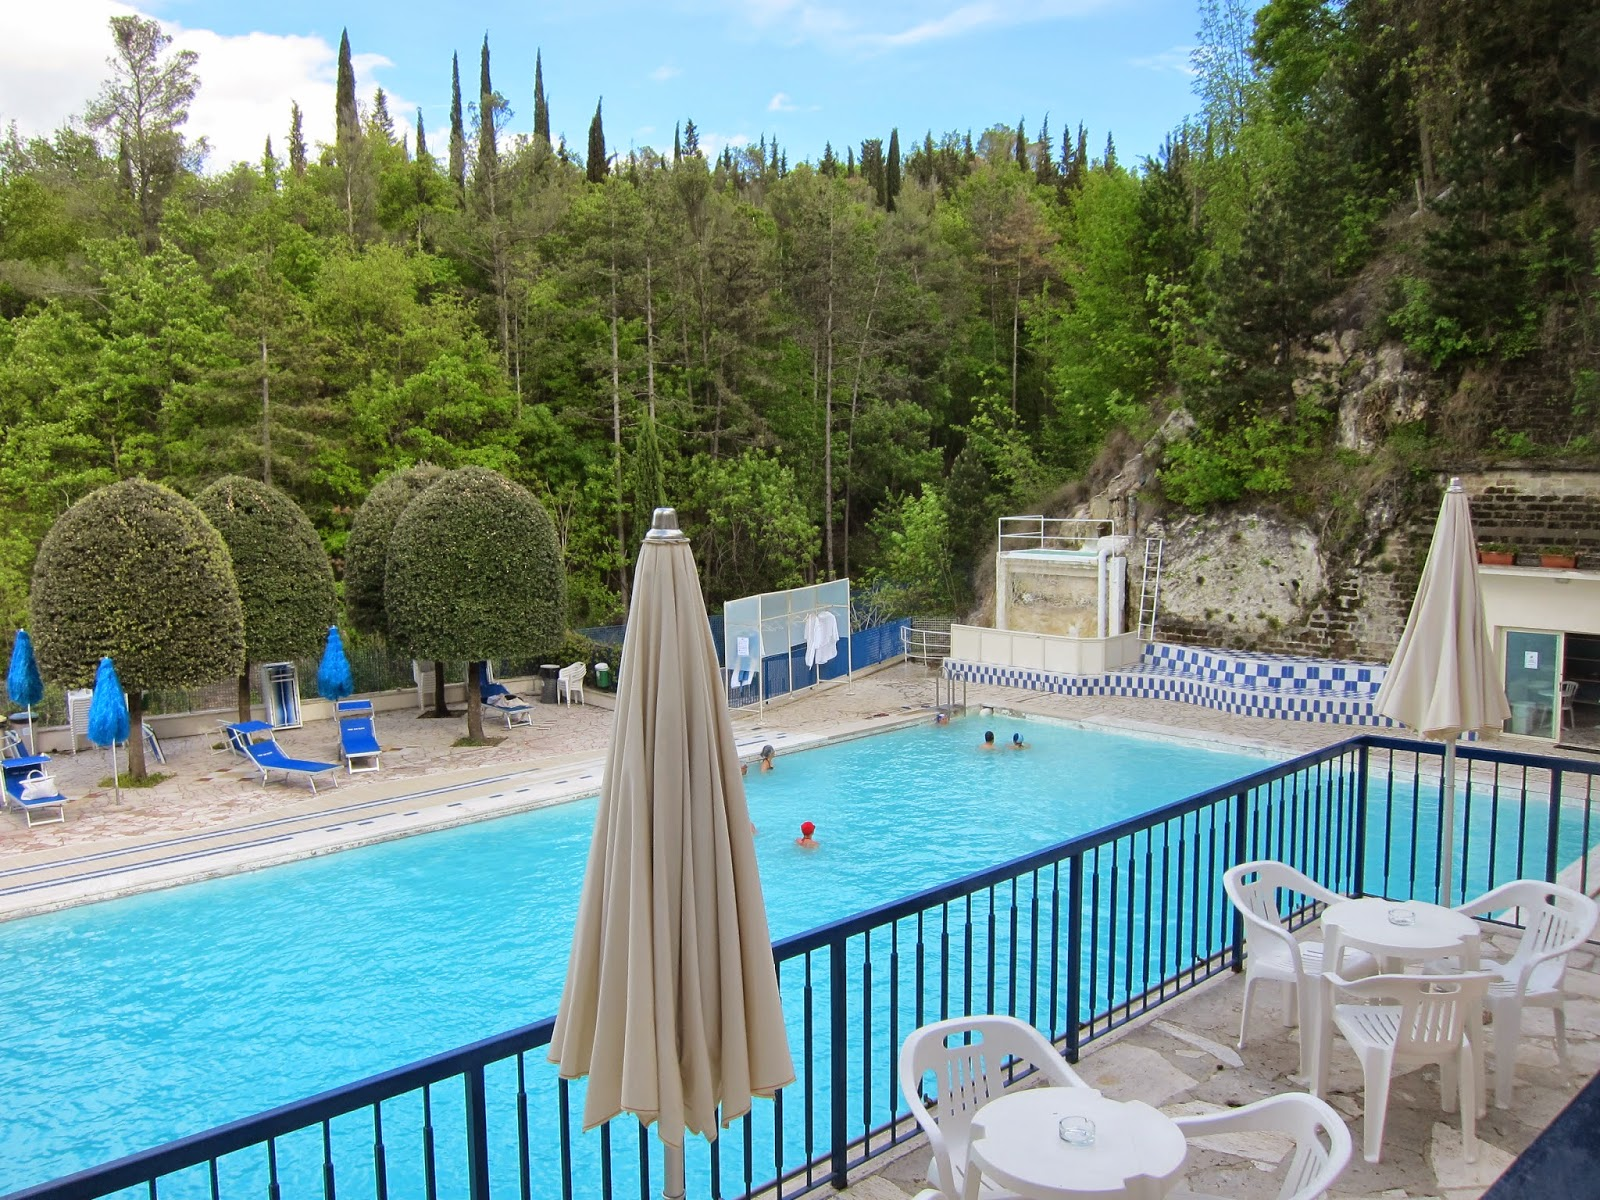 http://www.booking.com/city/it/bagni-san-filippo.en.html?aid=388802